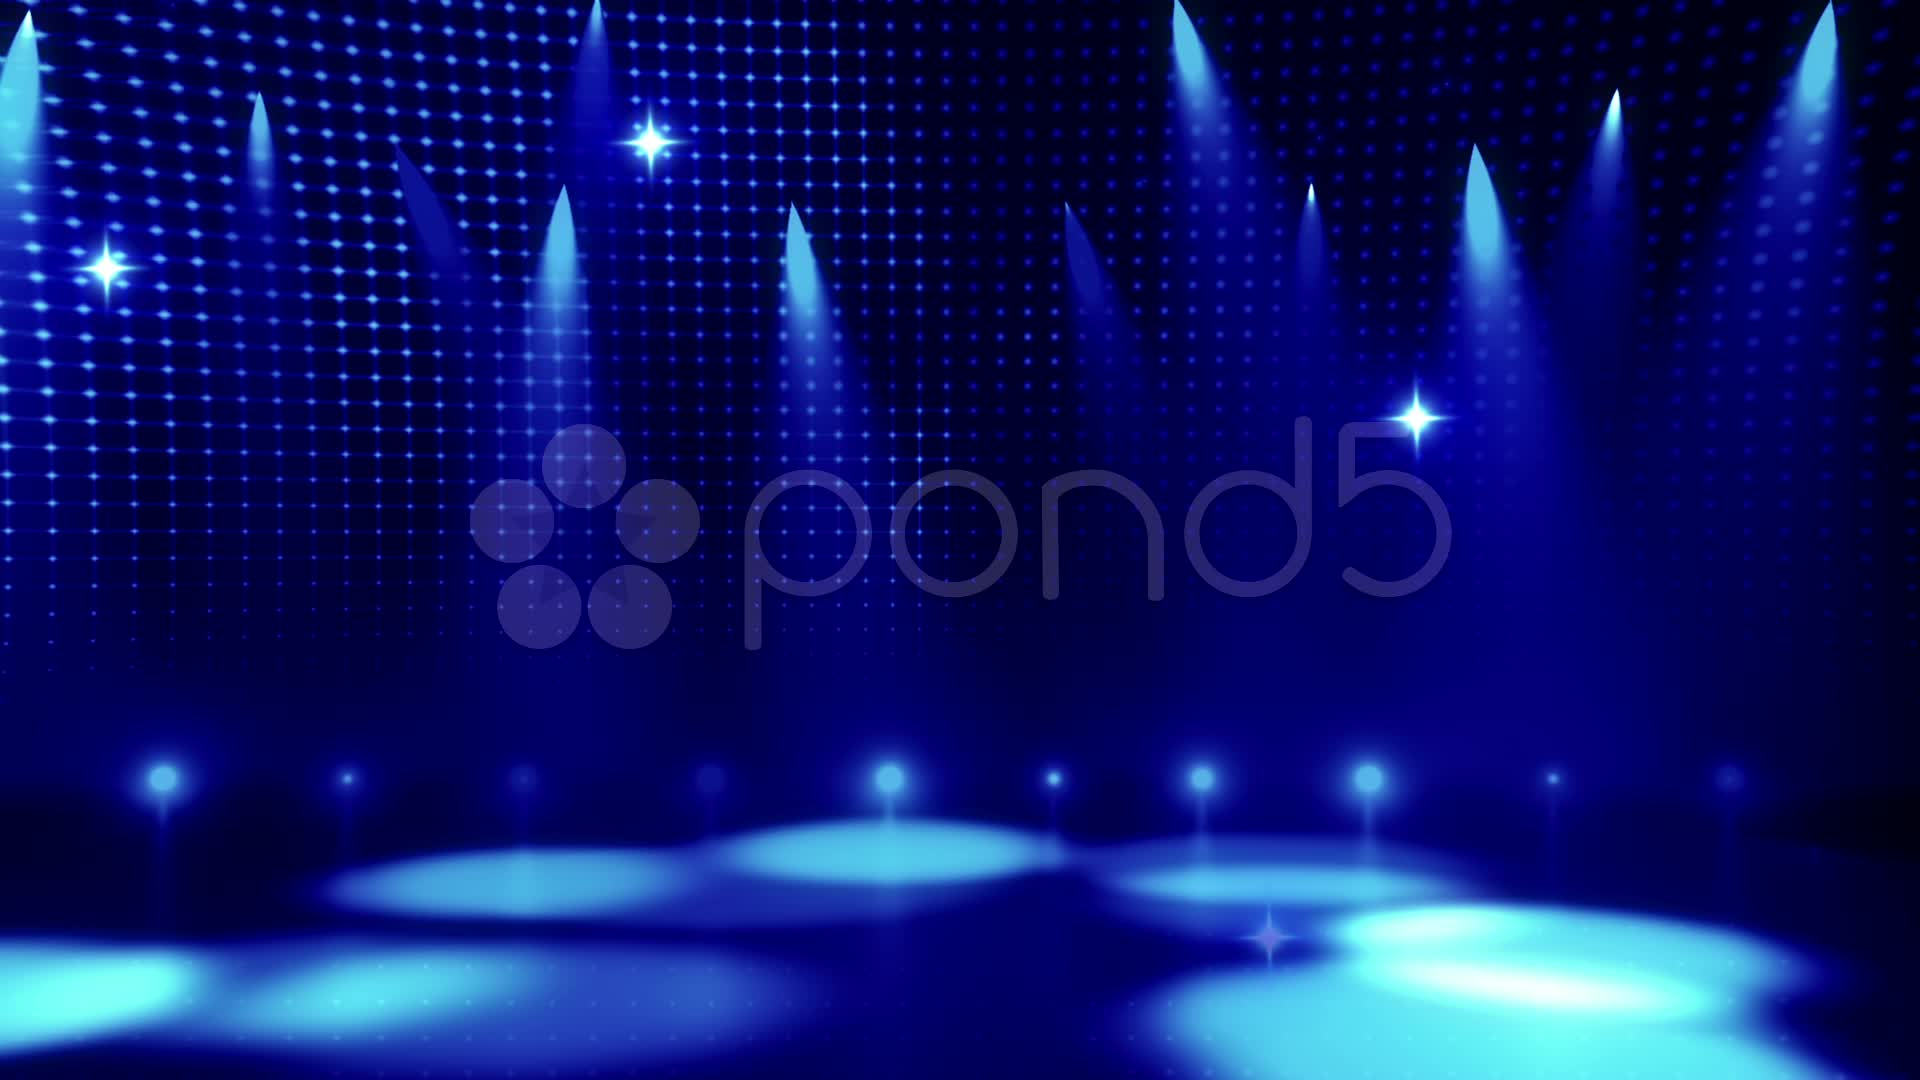 Disco stage 7 stock video footage 15369895 pond5 for 1234 get on the dance floor video download